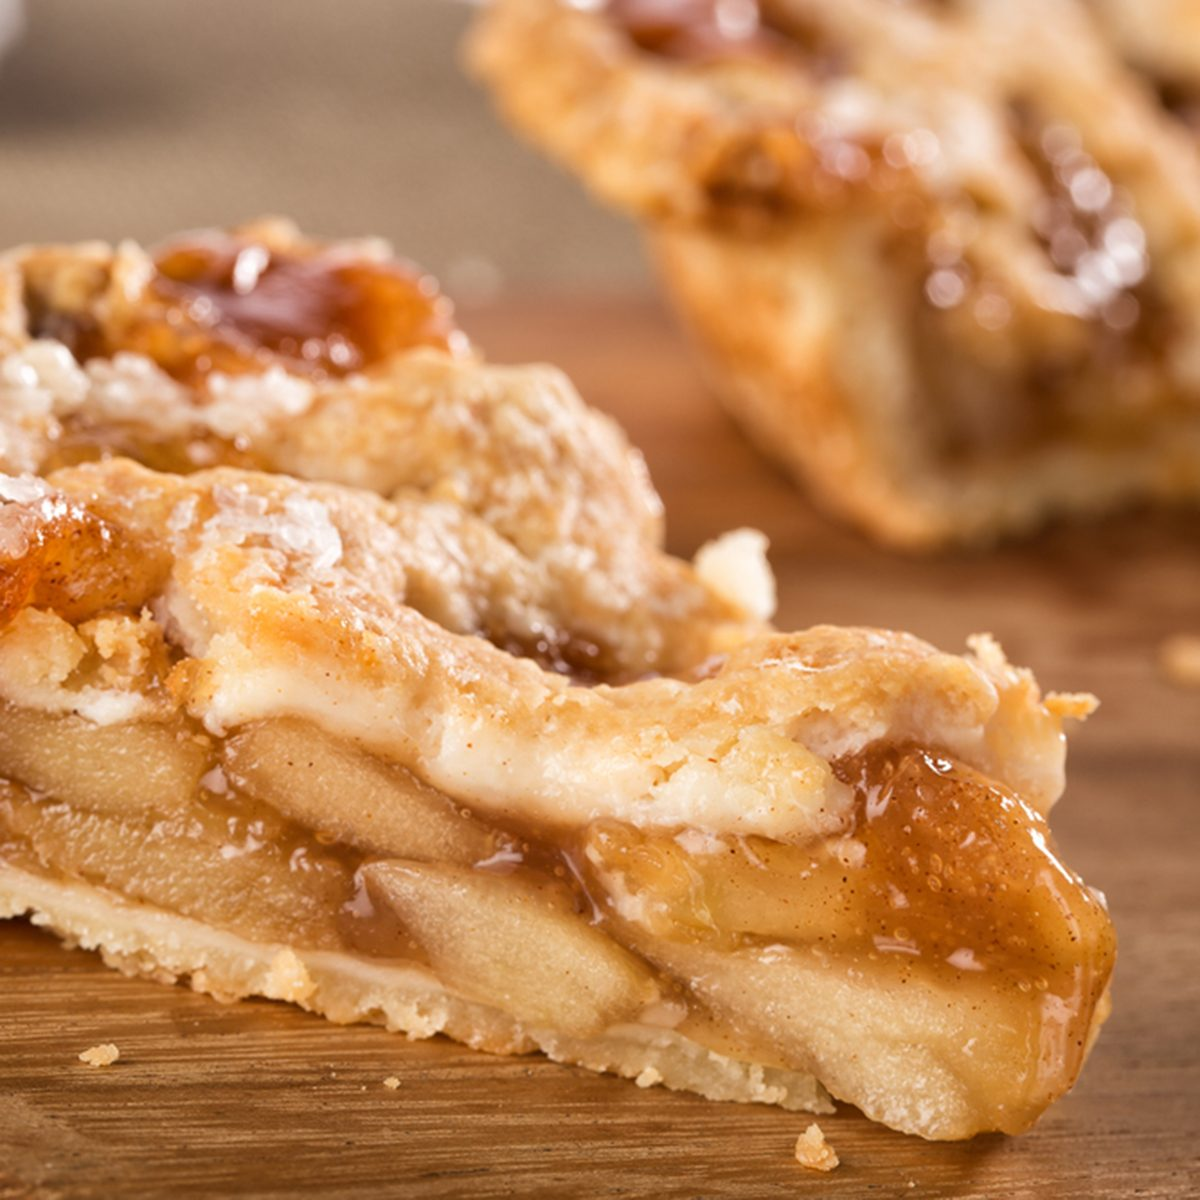 Slice of mouth watering rustic apple pie